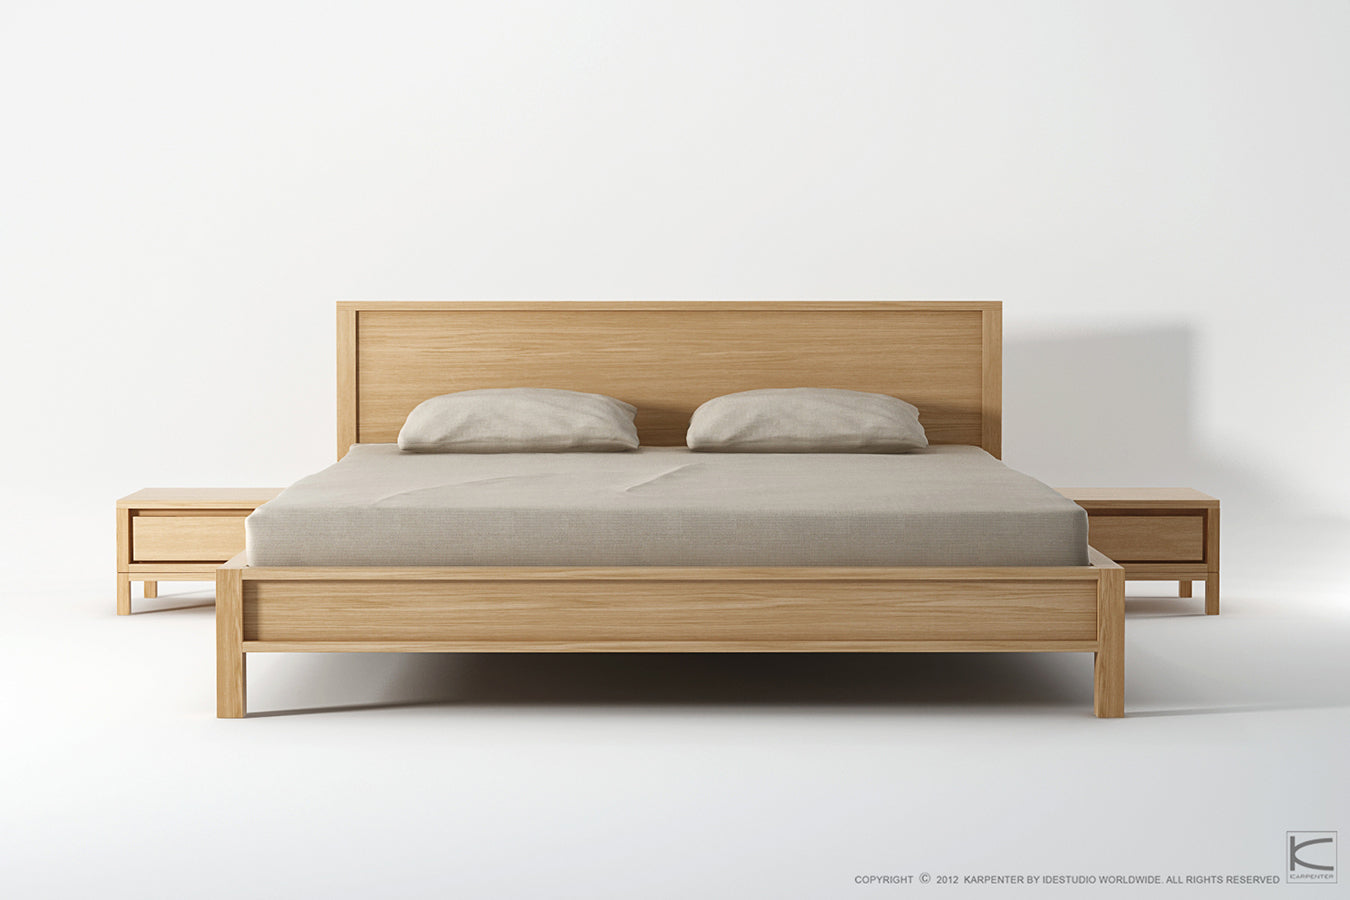 Image of bed